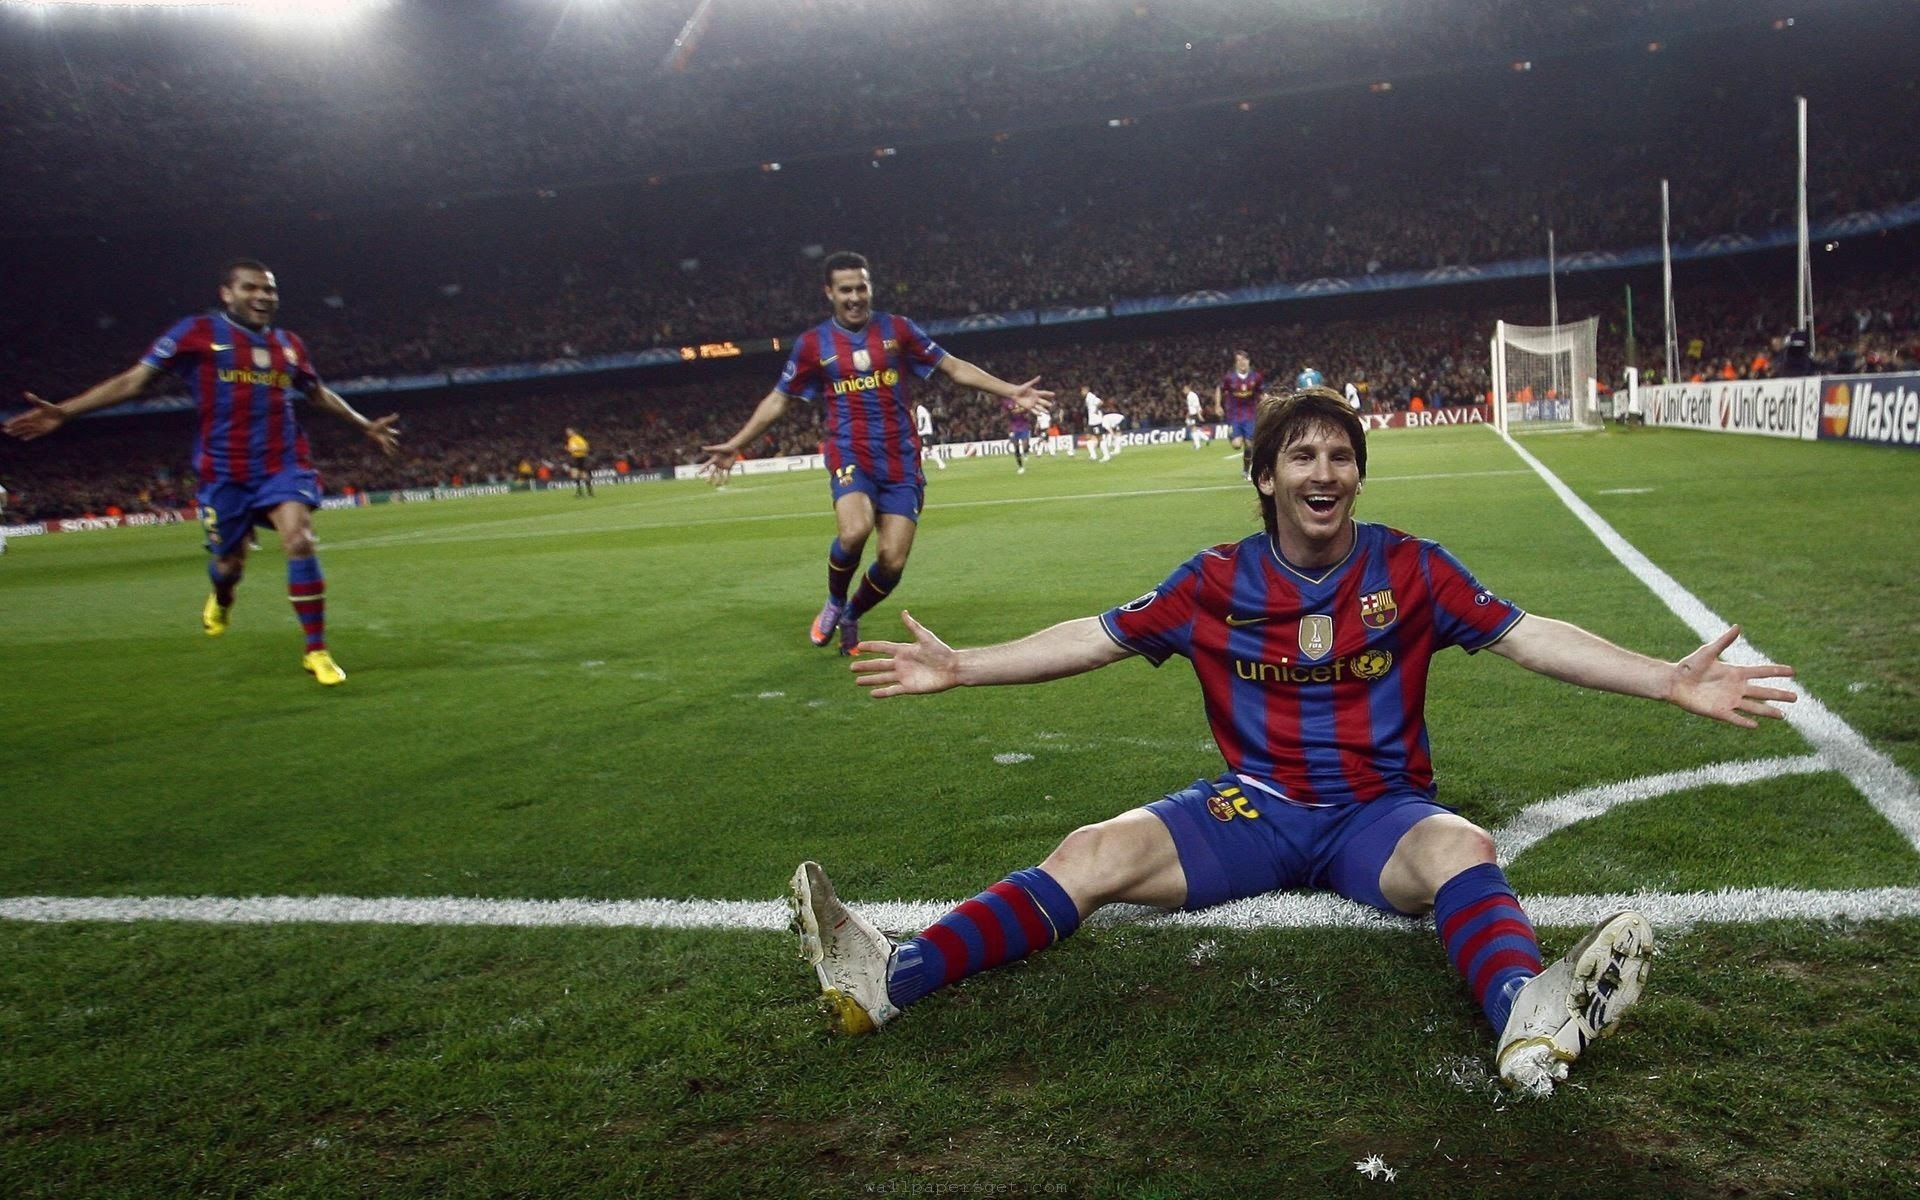 FCB Leo Messi, HD Sports, 4k Wallpapers, Images ...